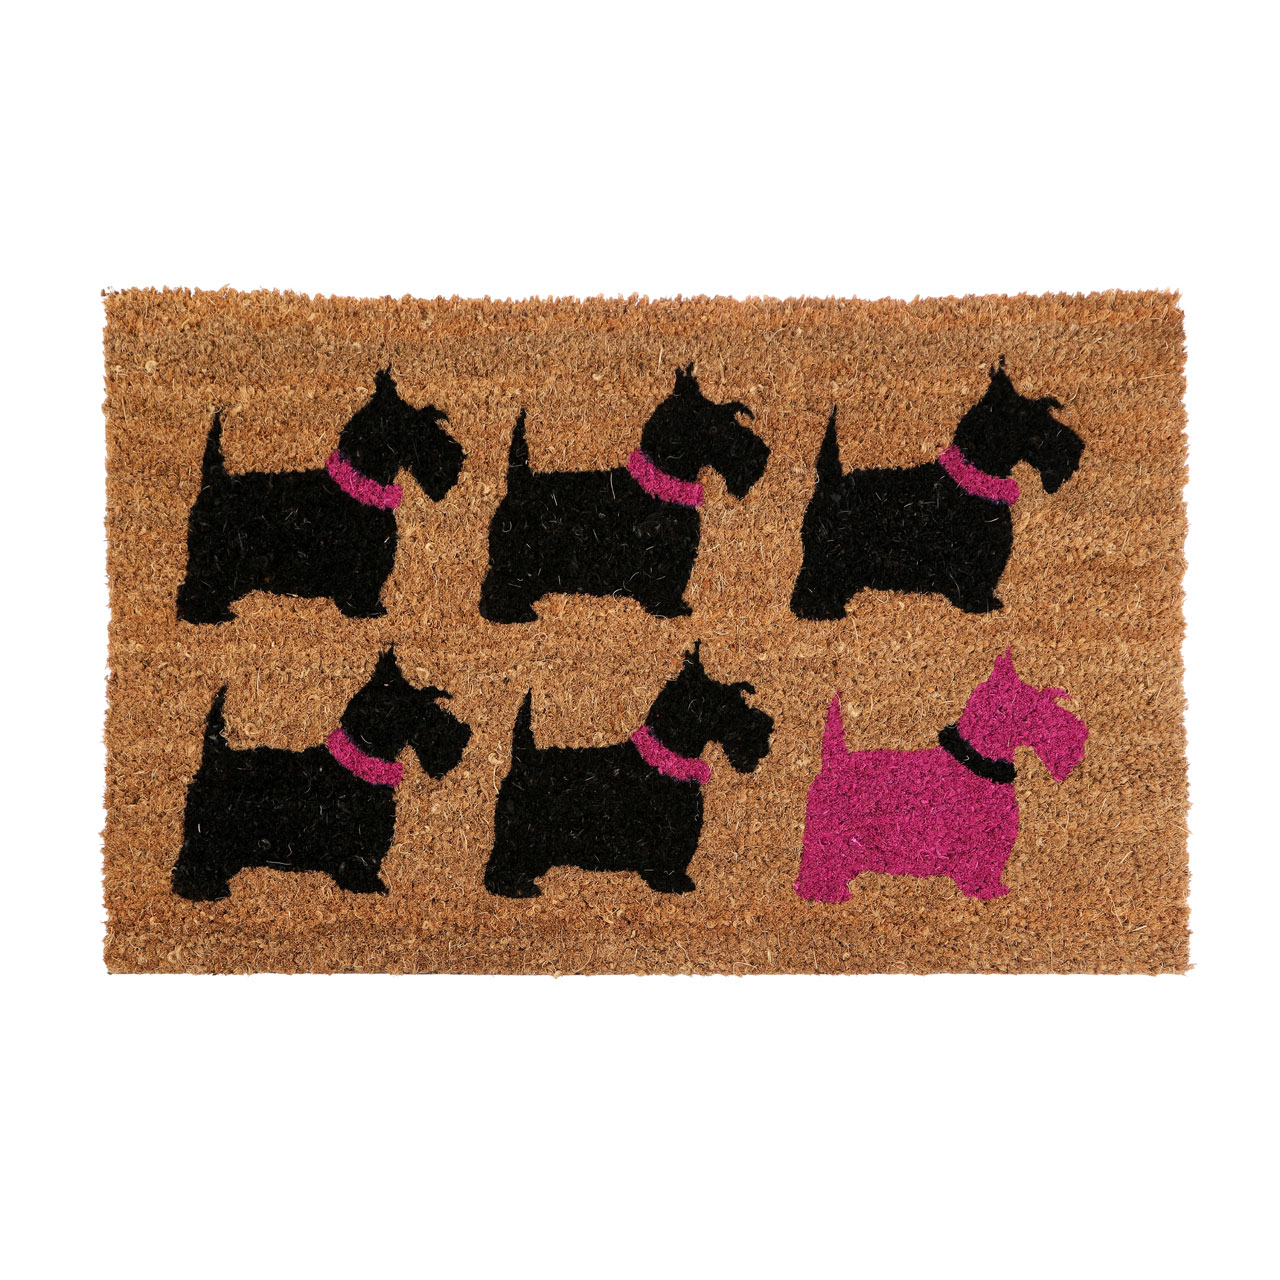 Brown Coir Doormat Scottie Dog Print Non Slip Base Floor Rug Jpg 1280x1280 Dog  Door Mat